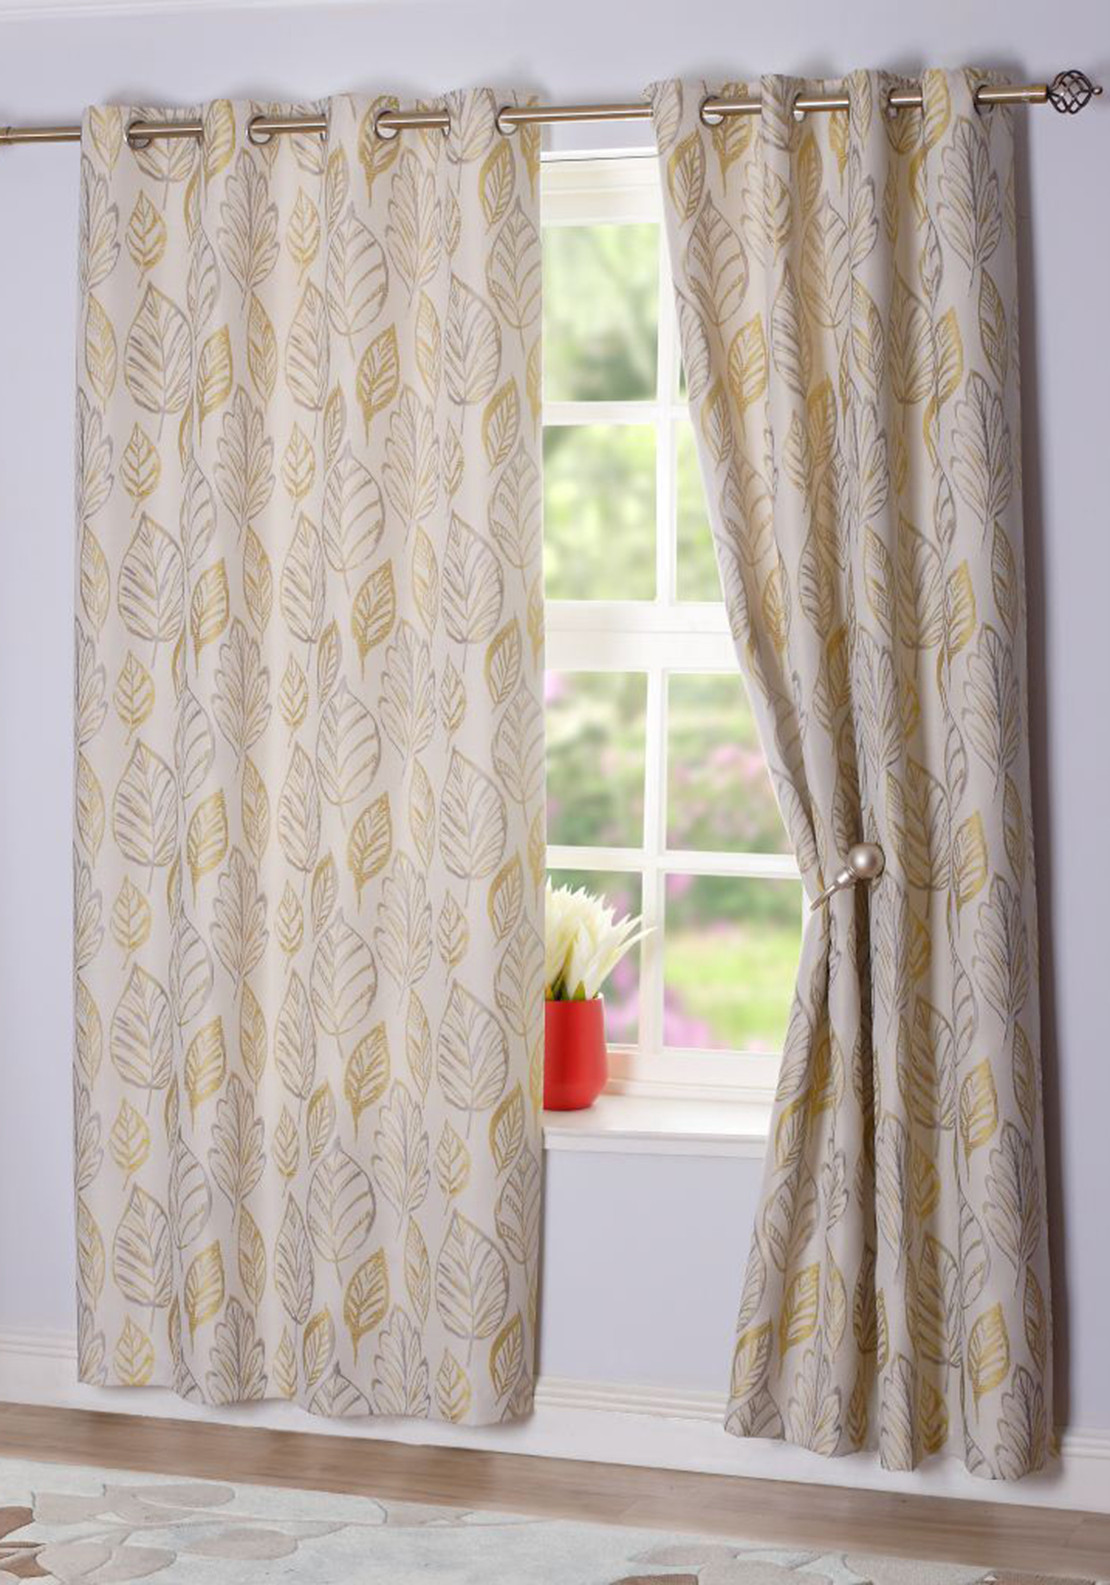 E.A. Delaney Antwerp Eyelet Interlined Lime Curtains